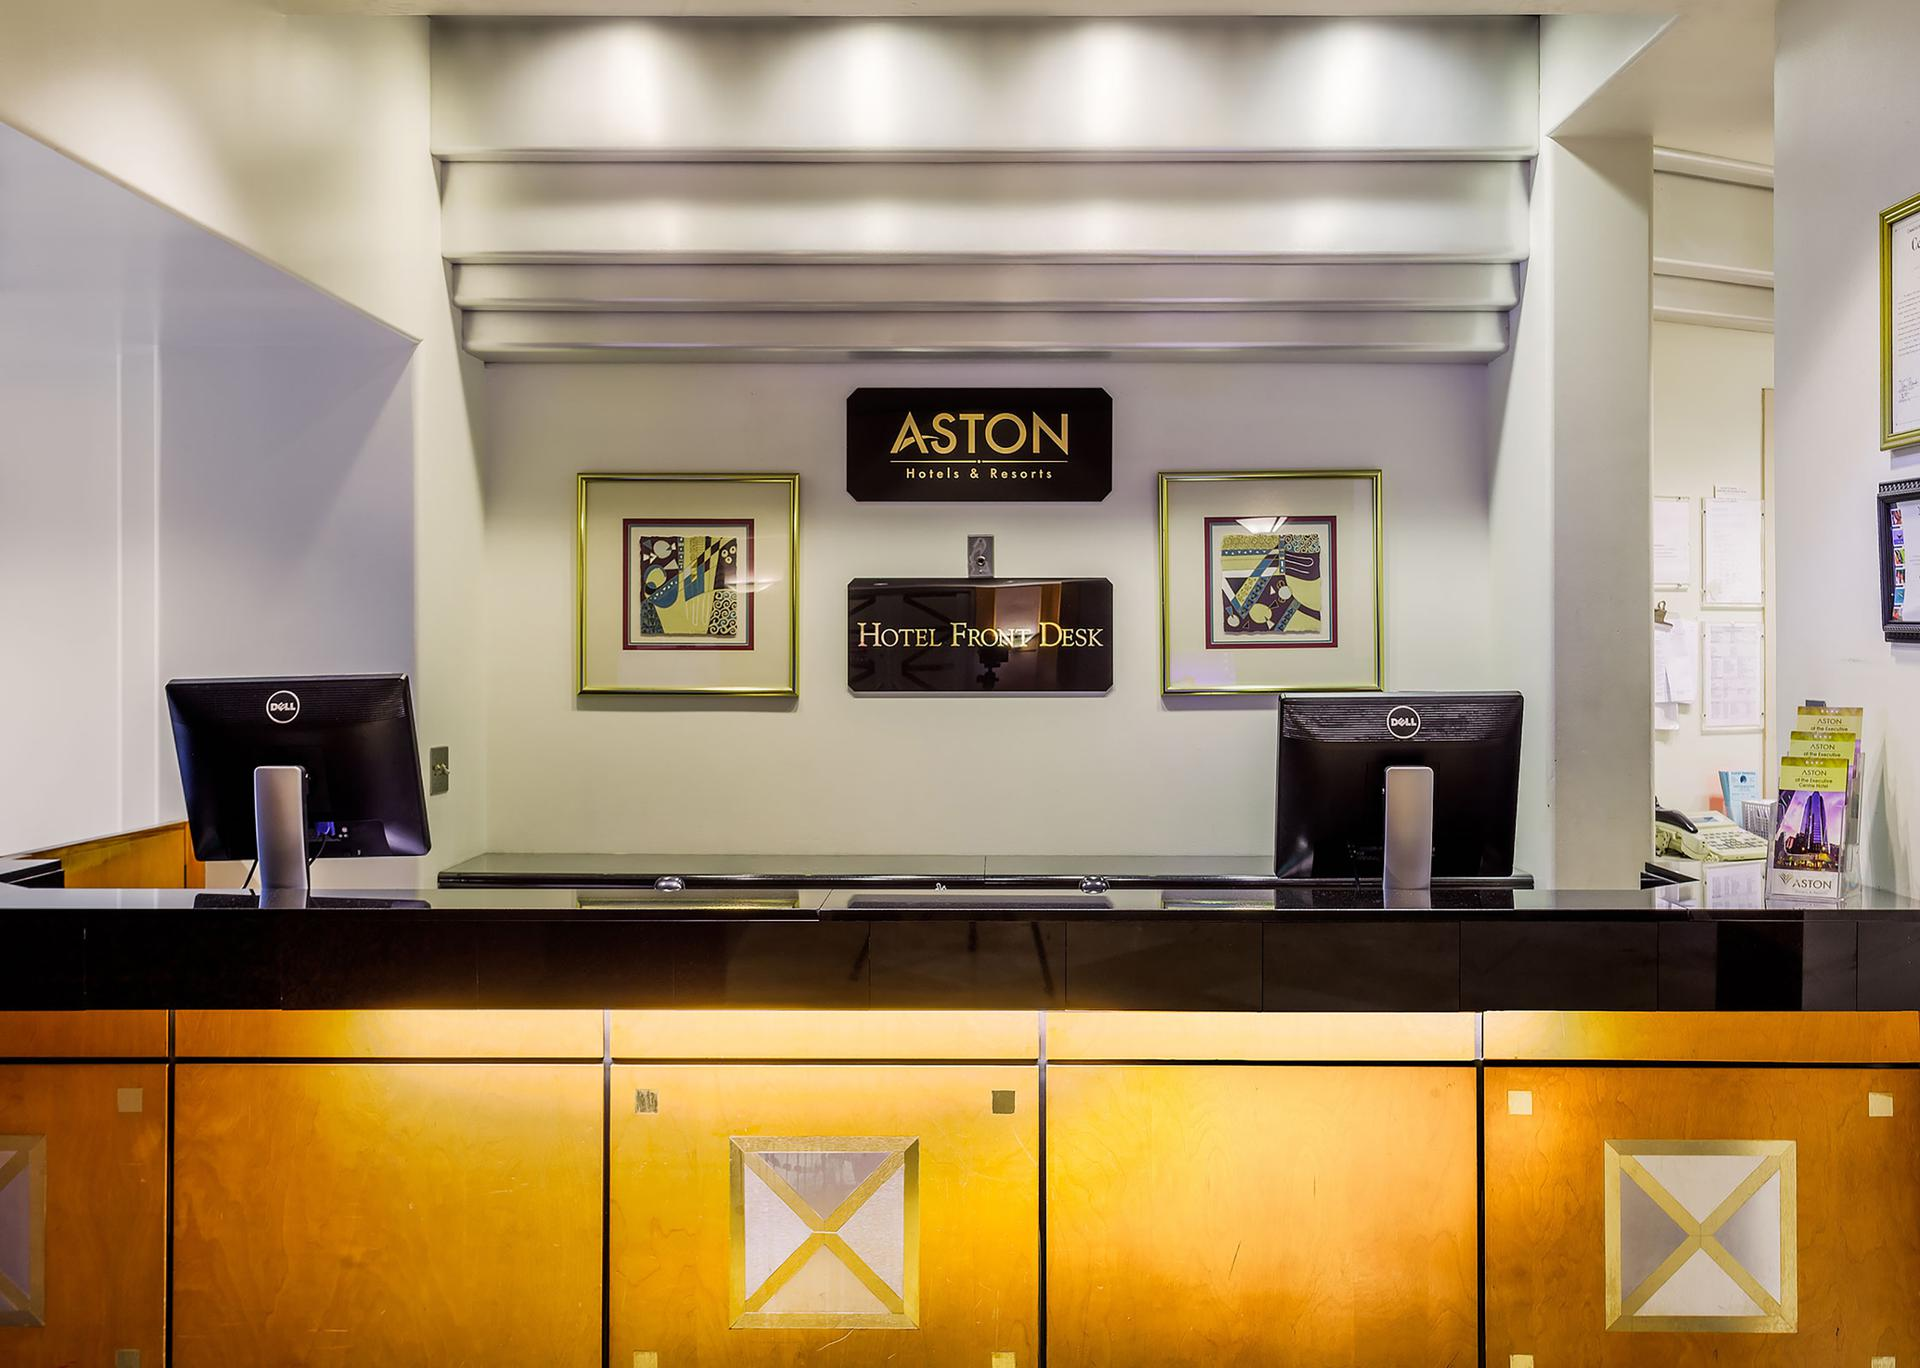 Aston At The Executive Centre Hotel Front Desk